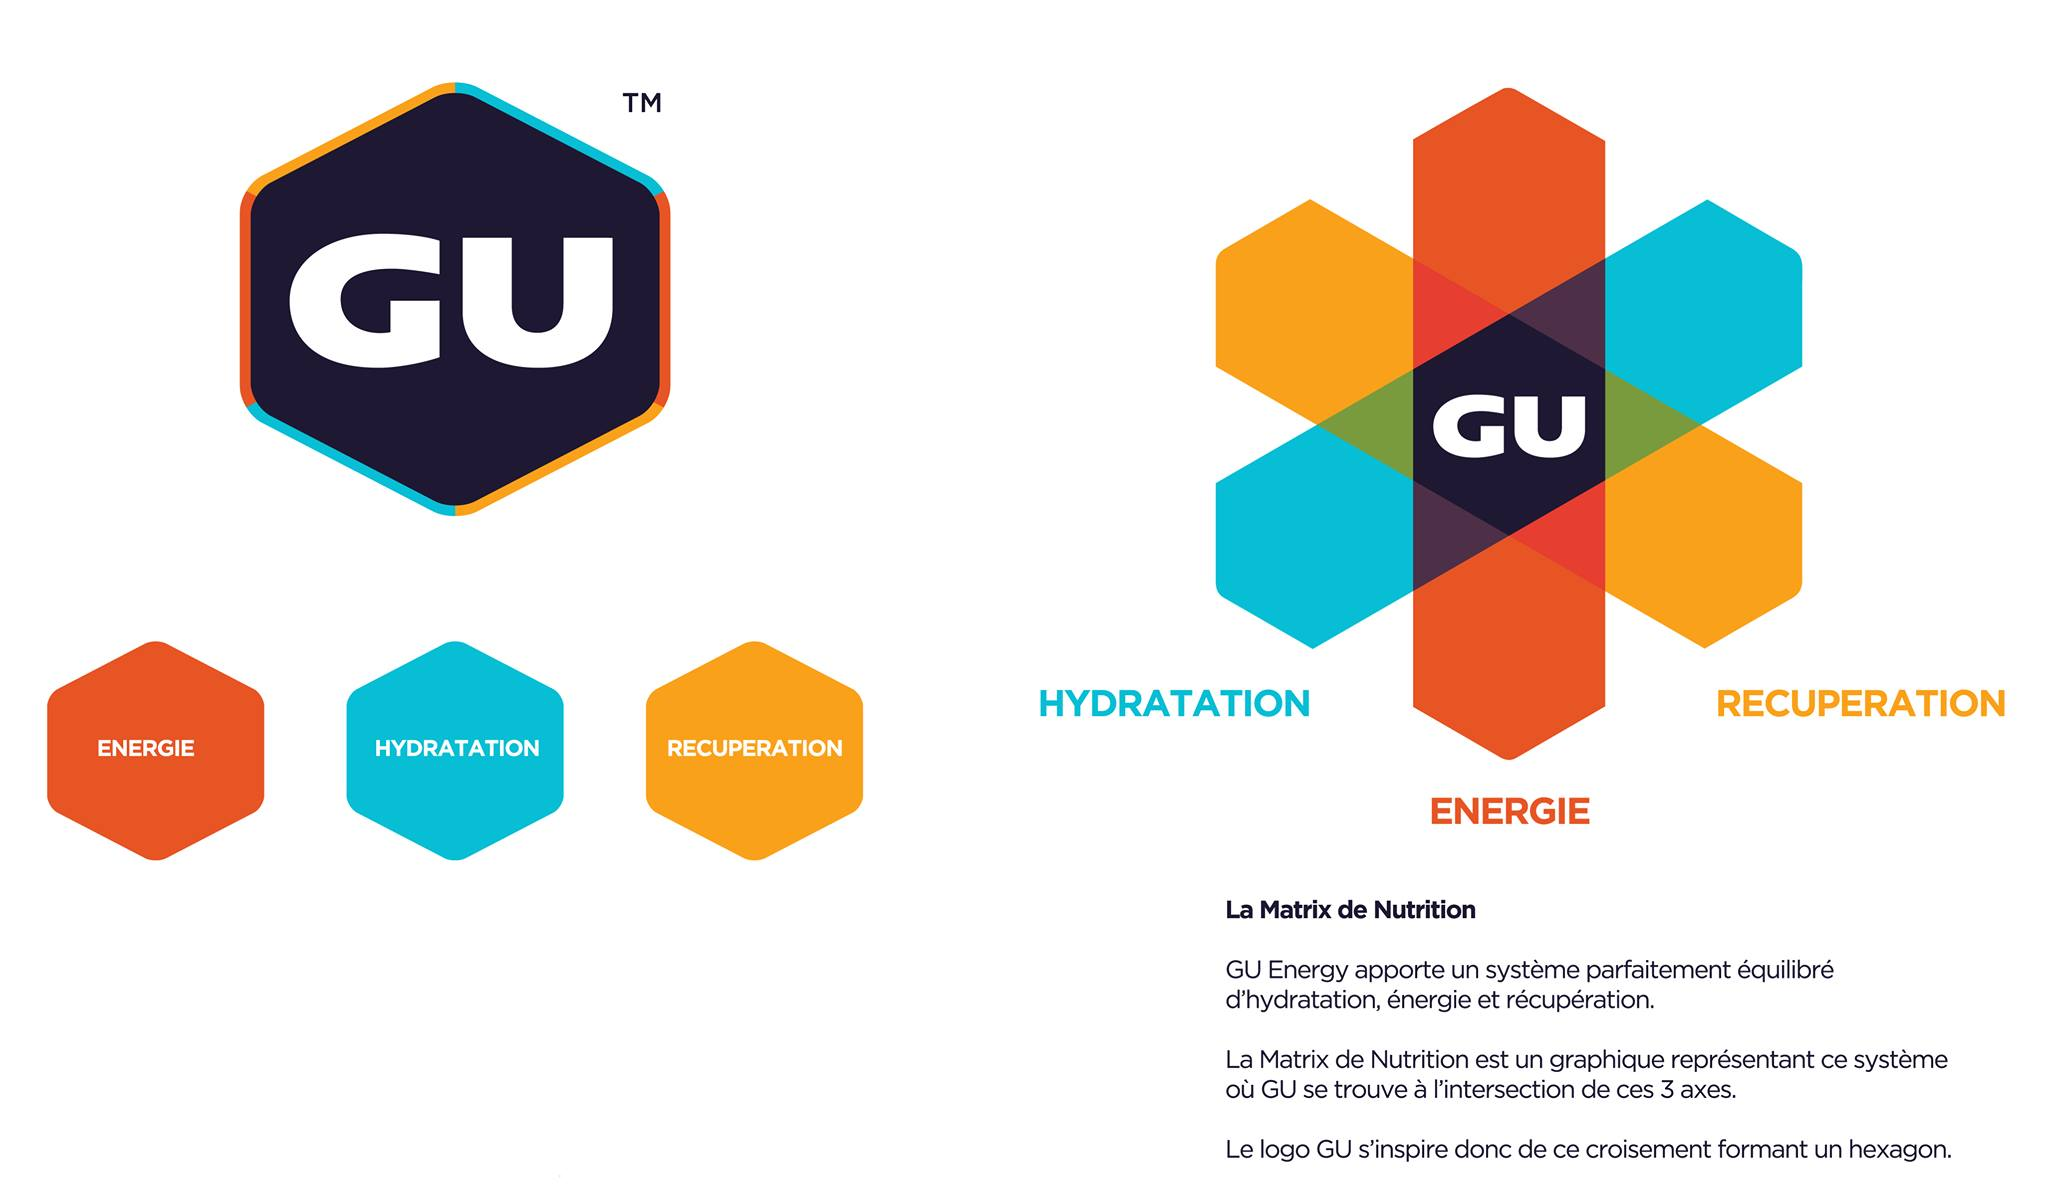 guenergy-newbrand-guforit-matrix-nutrition